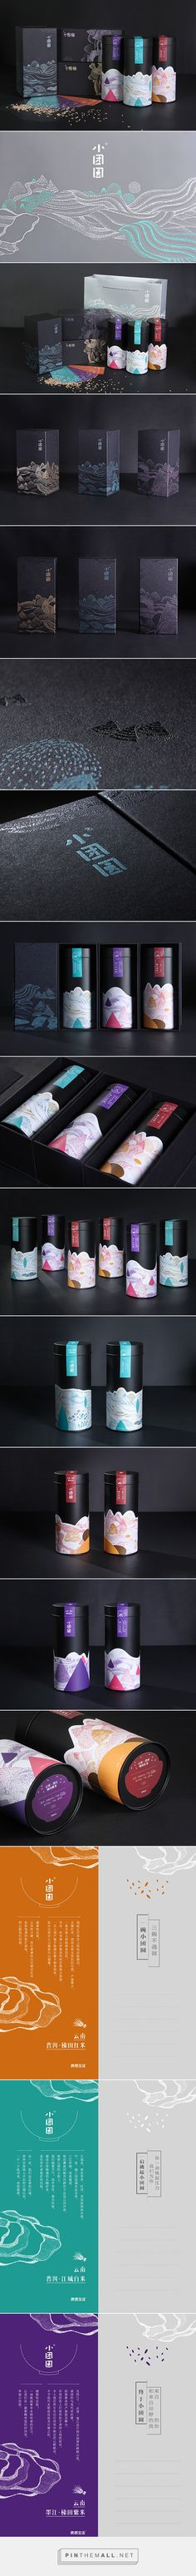 Xiaotuanyuan (I believe it's tea oil, rice and salt -please feel free to correct me) designed by Yi Mi Xiaoxin. Pin curated by Rice Packaging, Cool Packaging, Brand Packaging, Tee Design, Label Design, Package Design, Corporate Design, Packaging Inspiration, Design Graphique